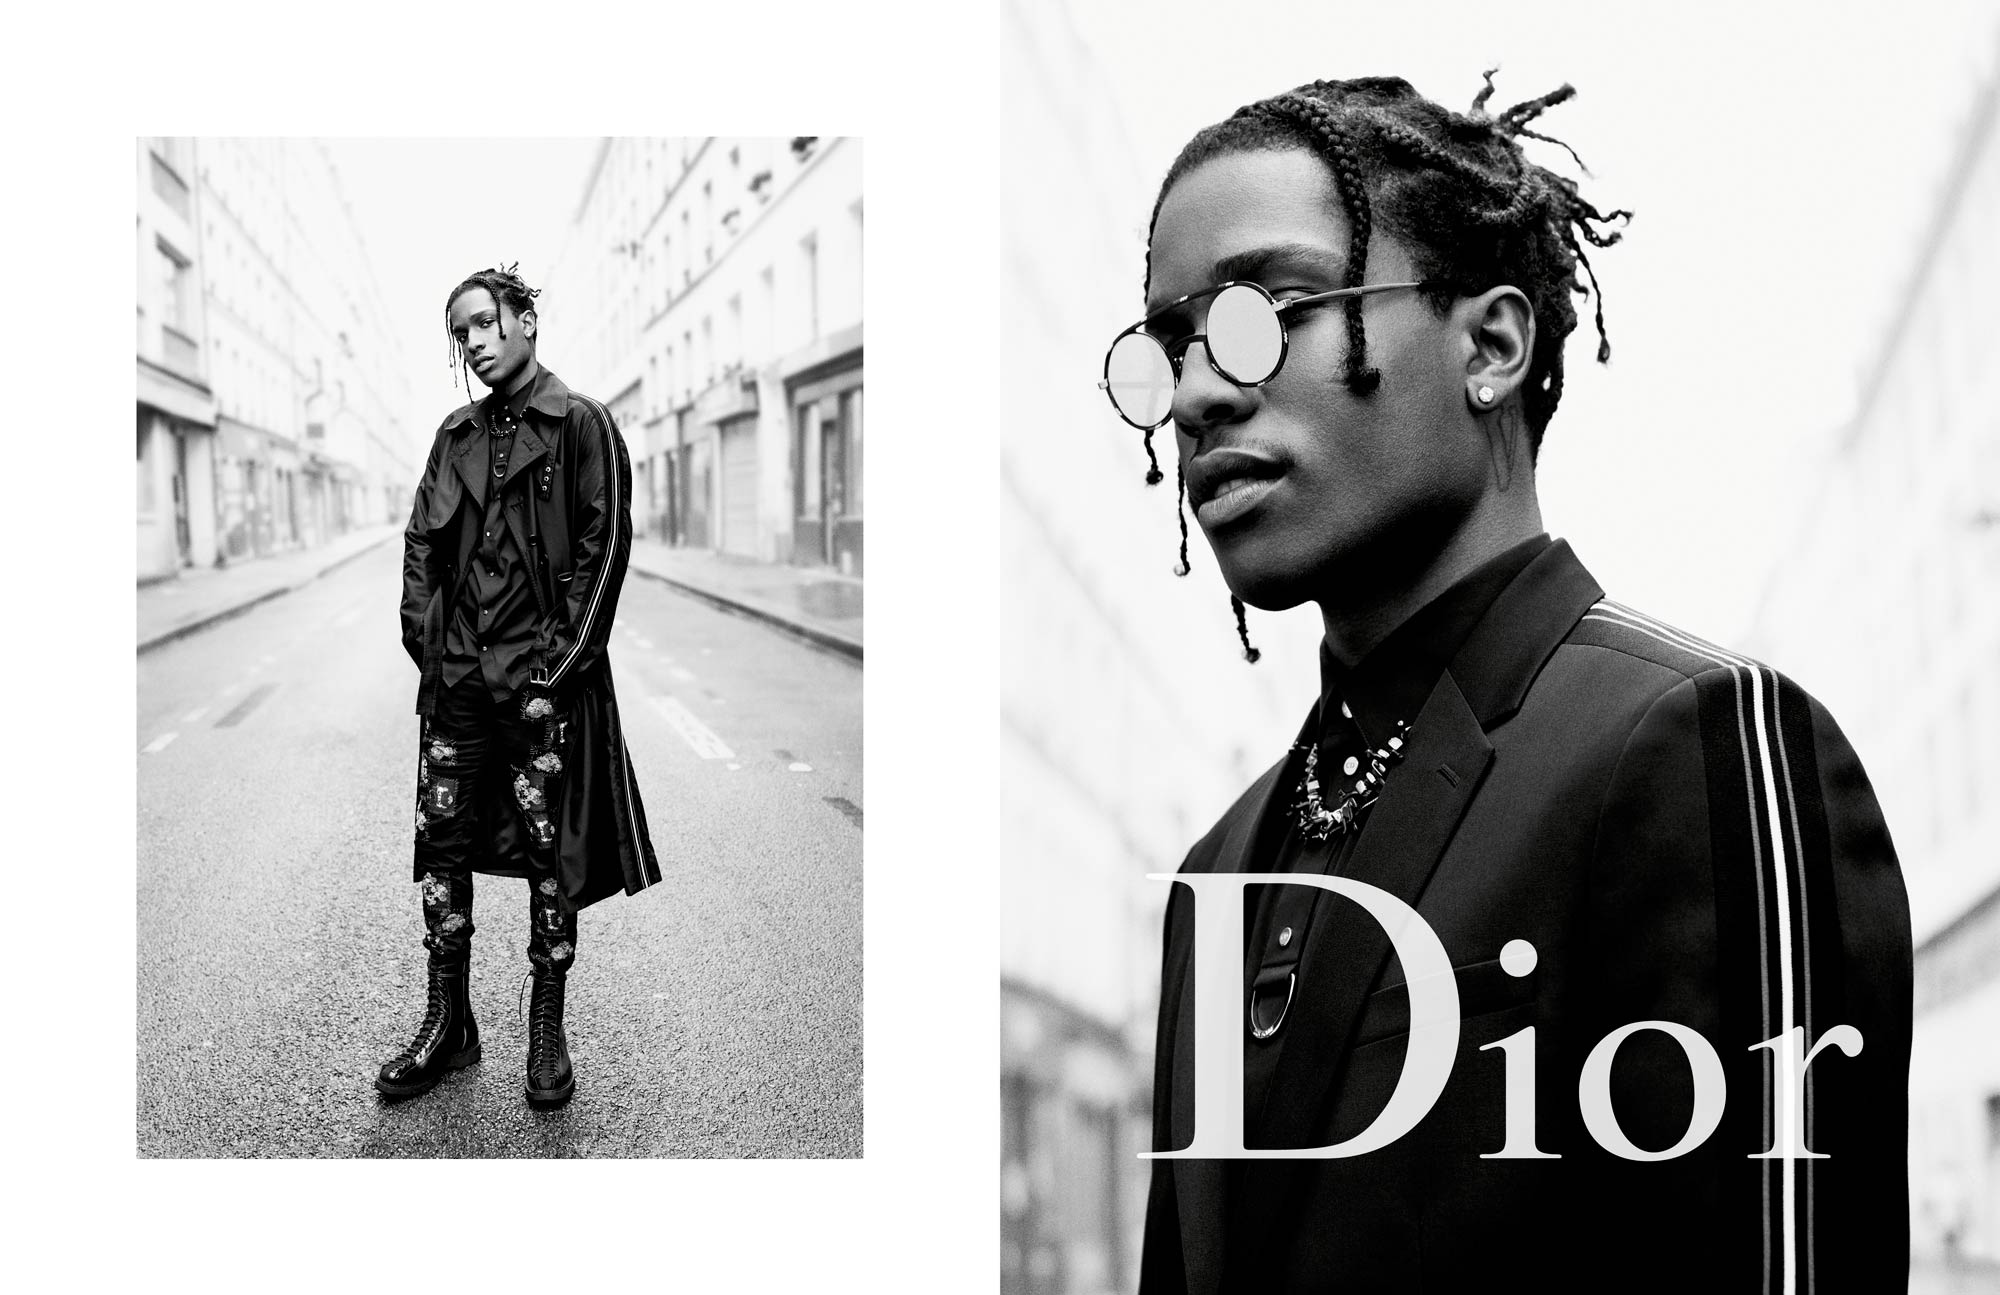 Dior Homme Summer 17 Ad Campaign Feat. A$AP Rocky & Boy ...